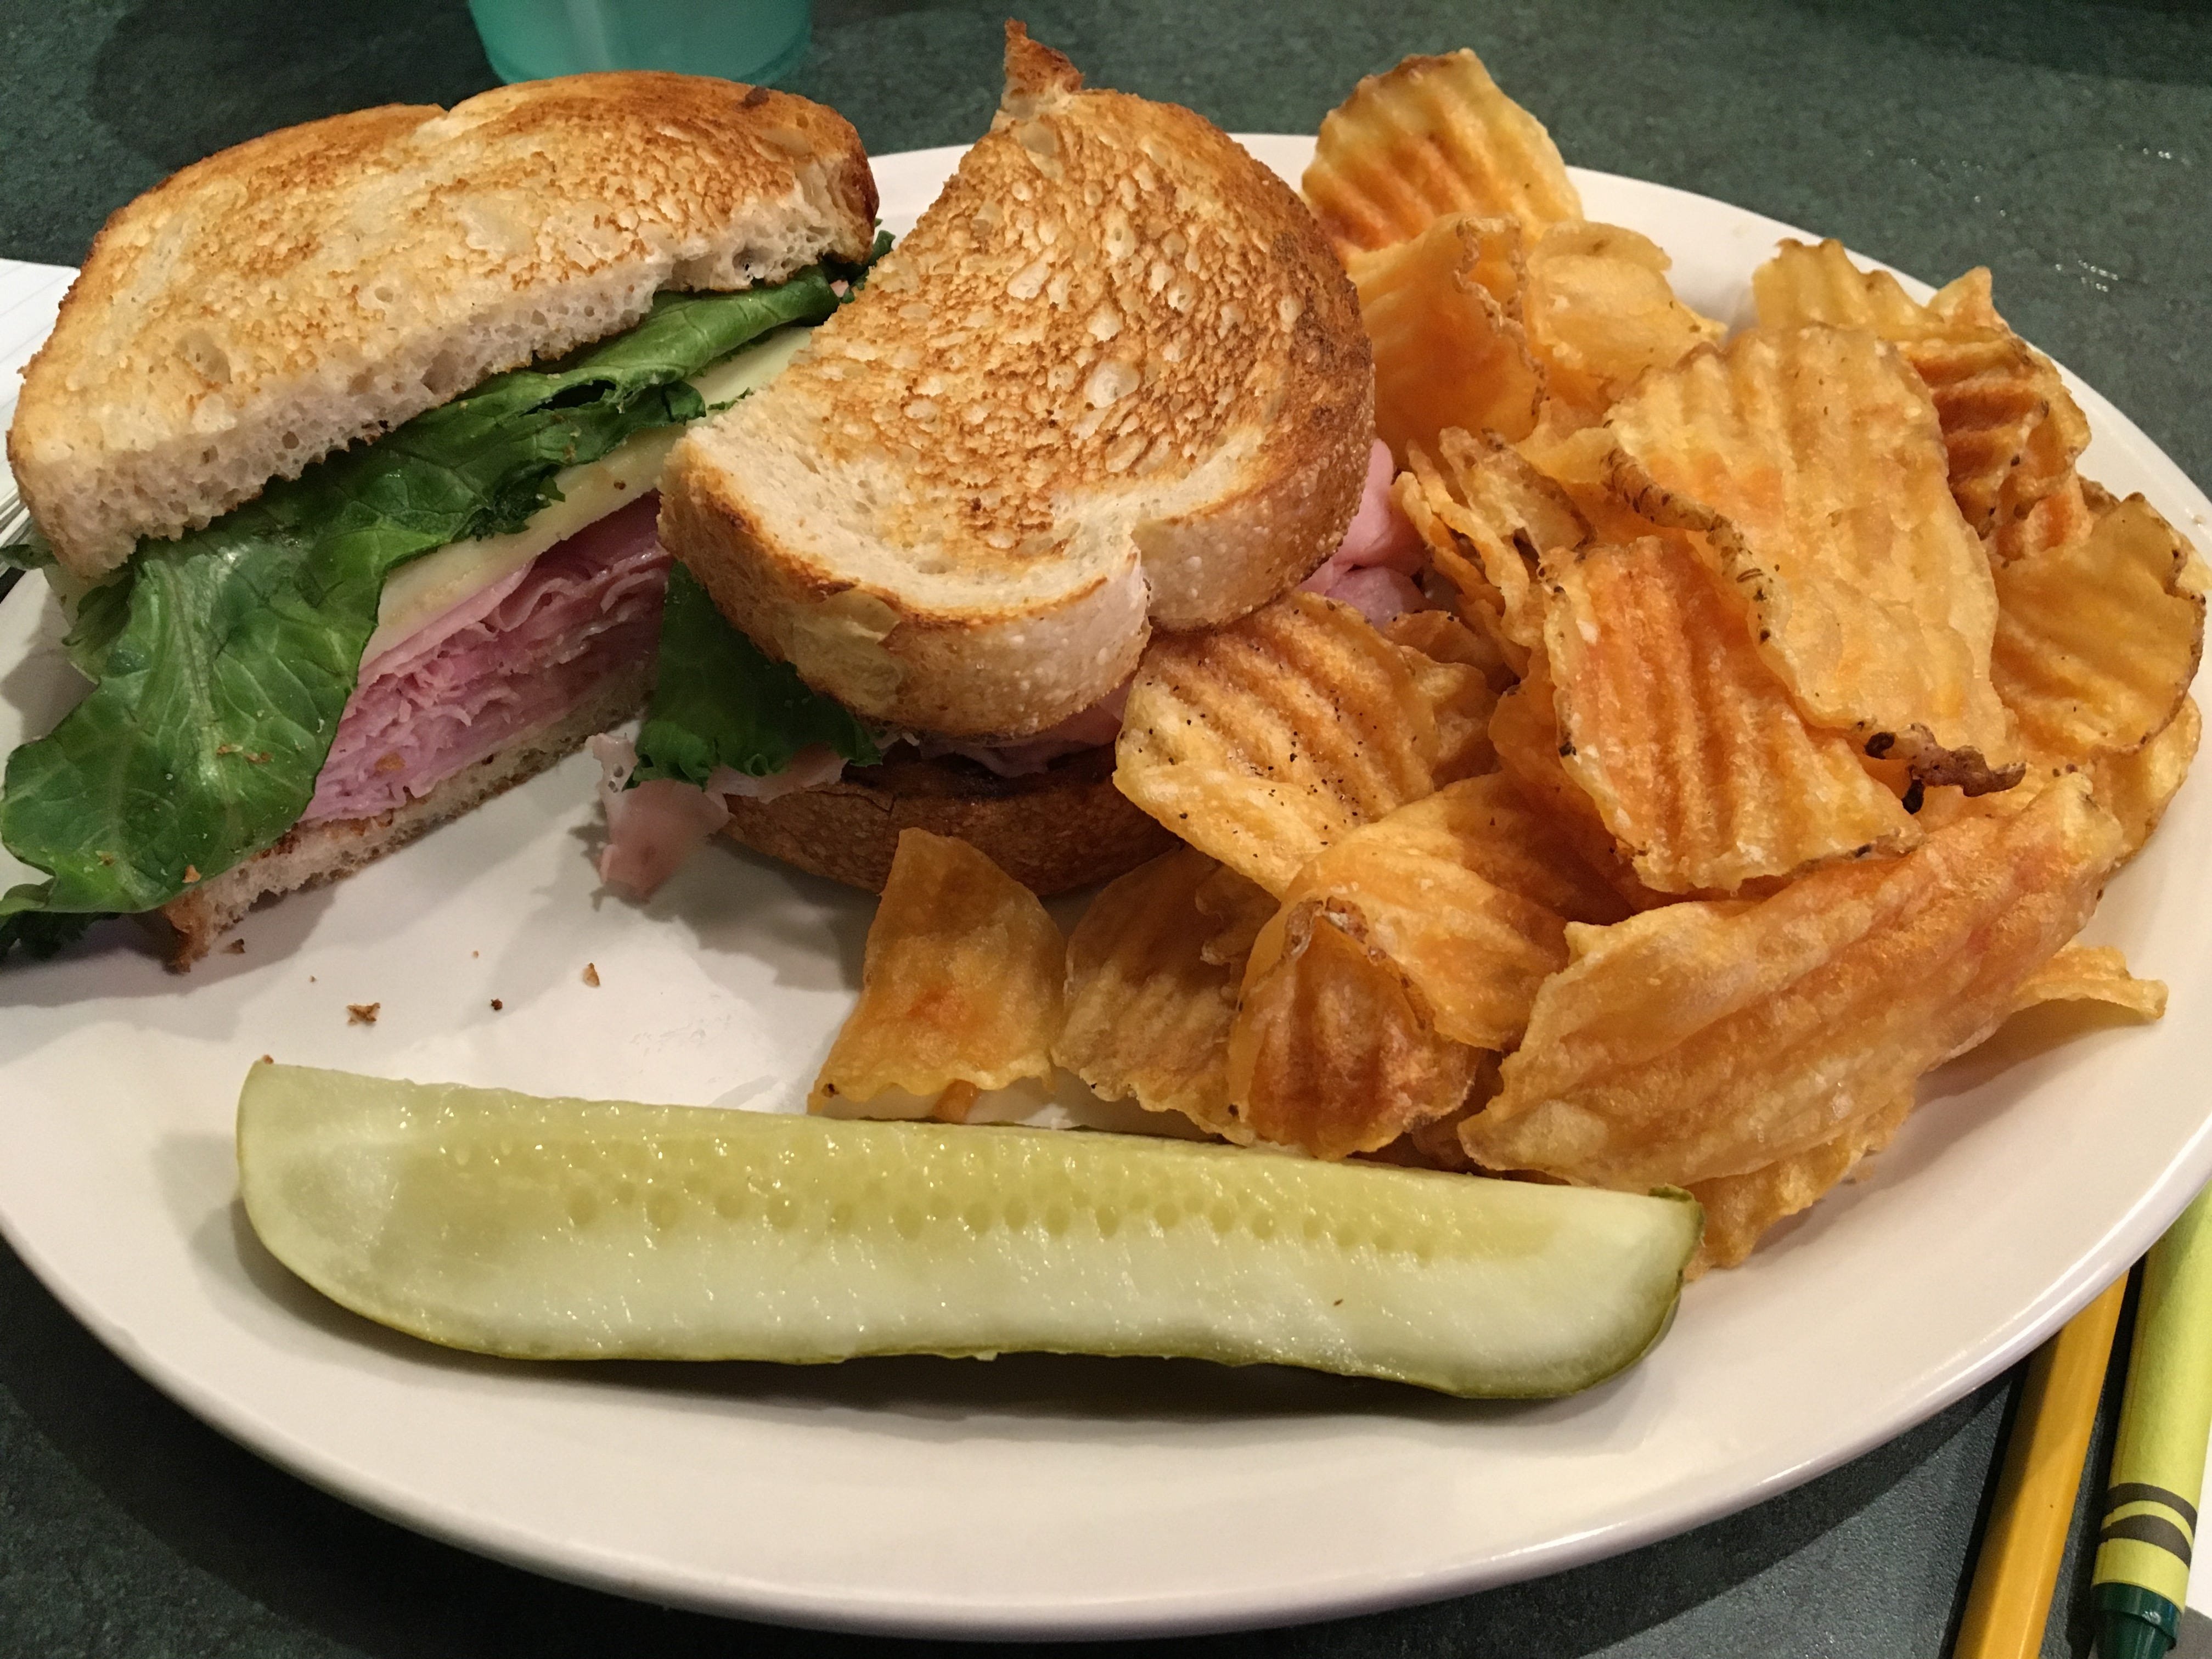 Kid-friendly ham and cheese sandwich with house-made potato chips.